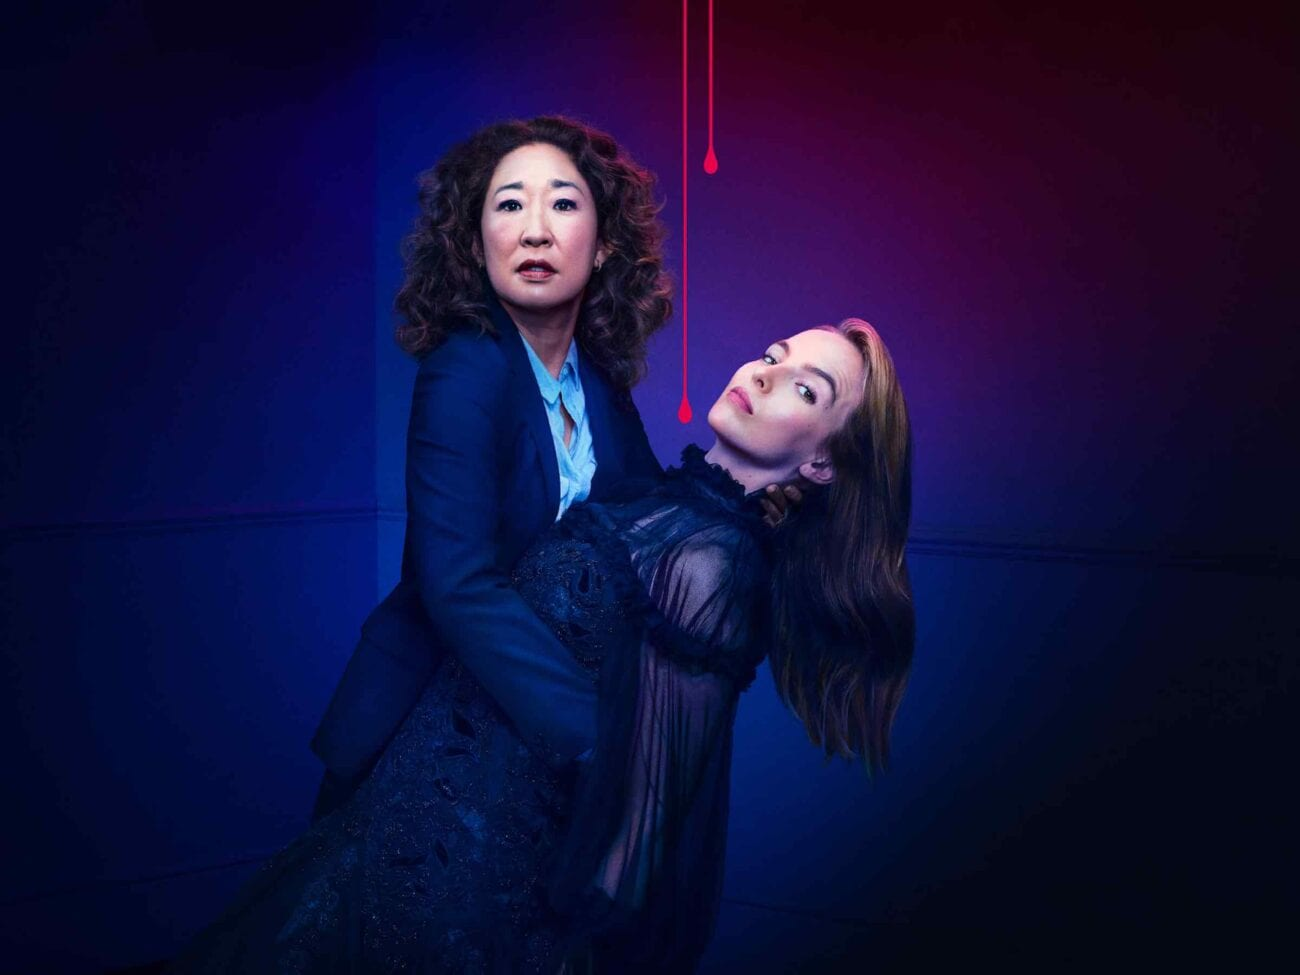 'Killing Eve' is one of those rare perfect shows that it seems like everyone is talking about. Here's our beginners' guide to 'Killing Eve'.